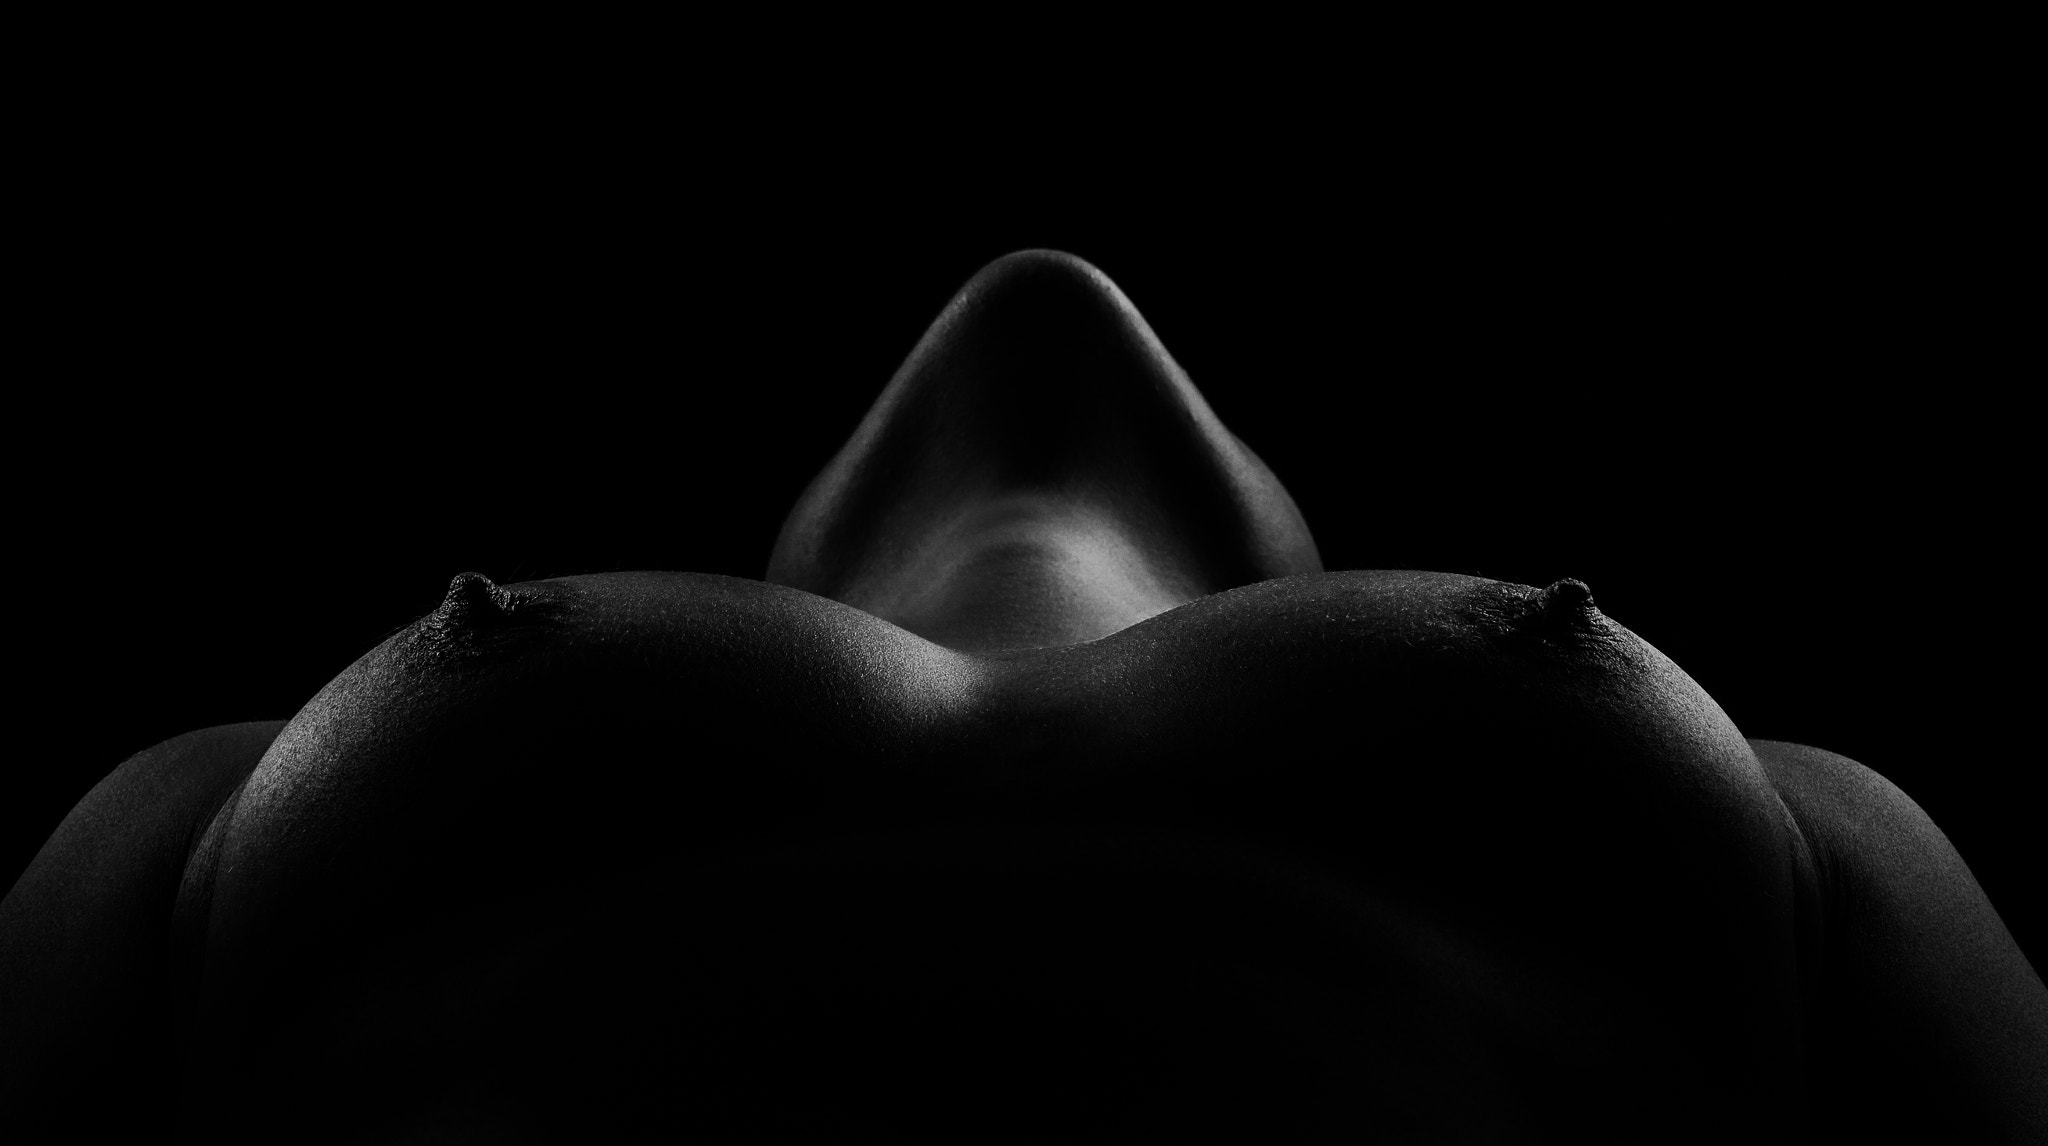 Photograph cleavage by Axel Lauer on 500px